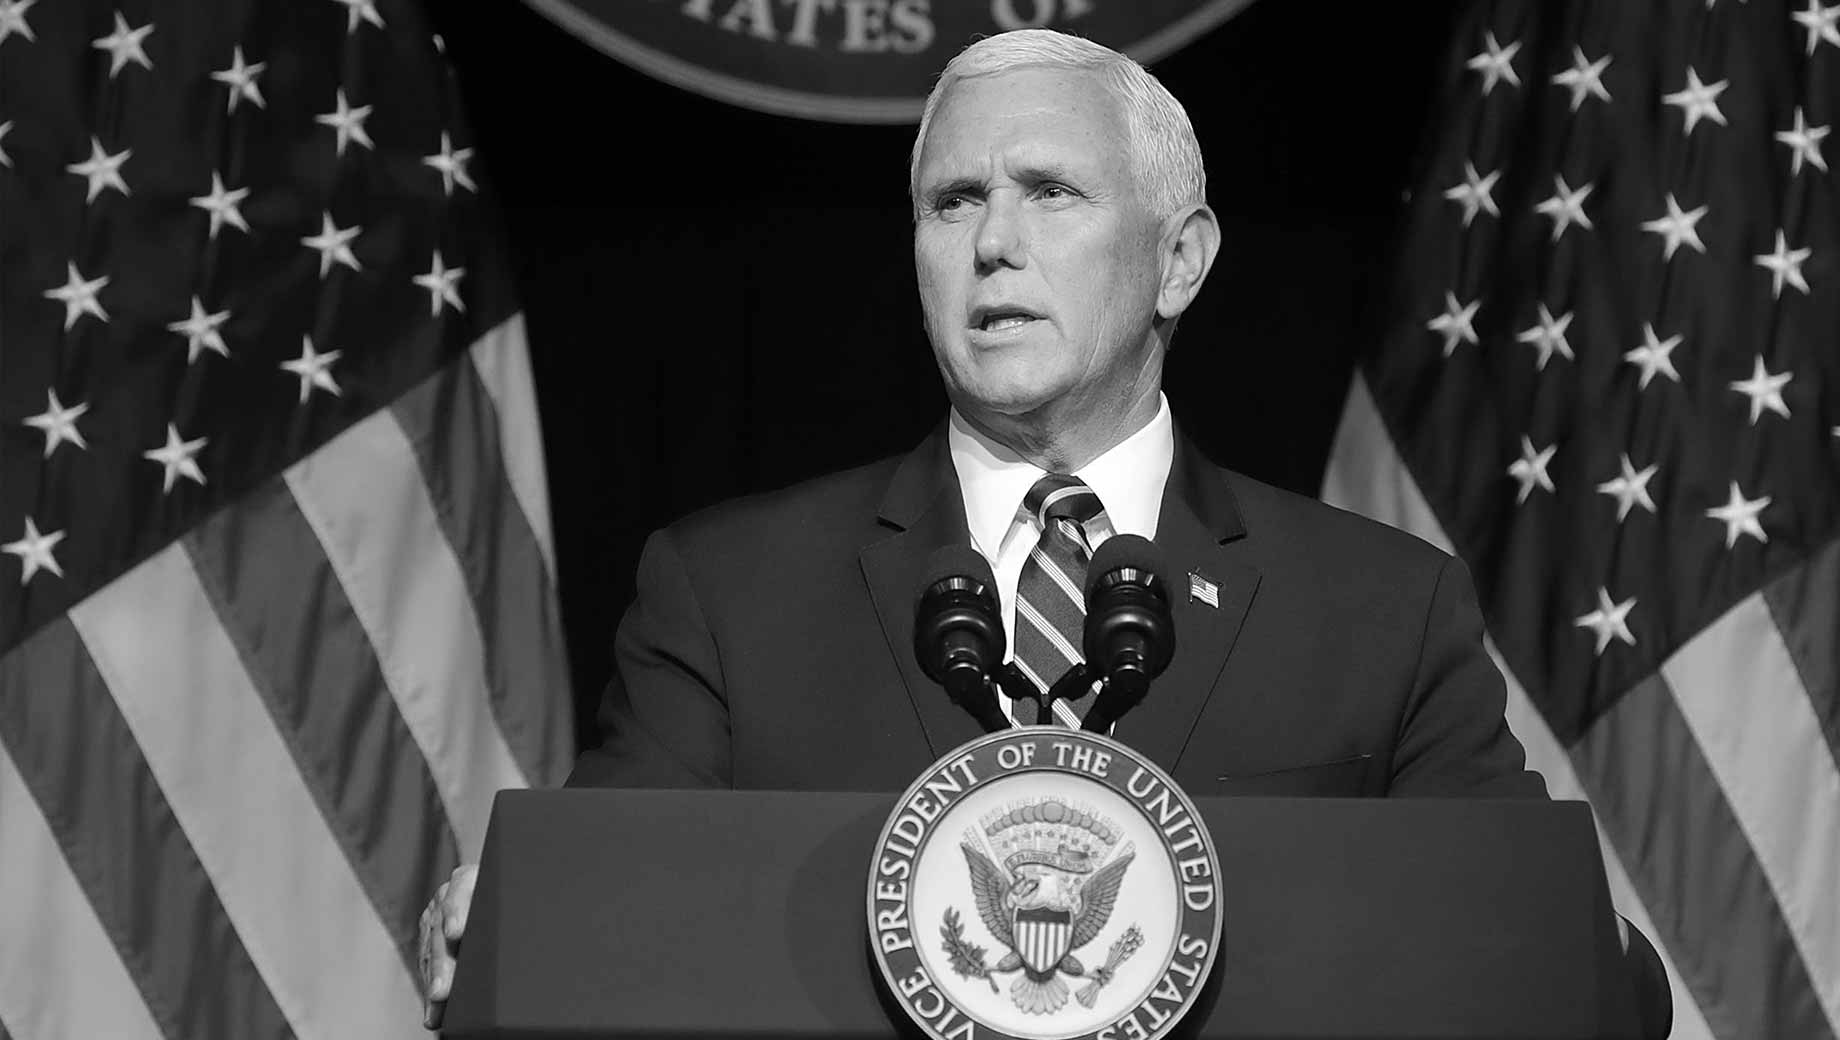 U.S. Opinion on Pence Remains Divided